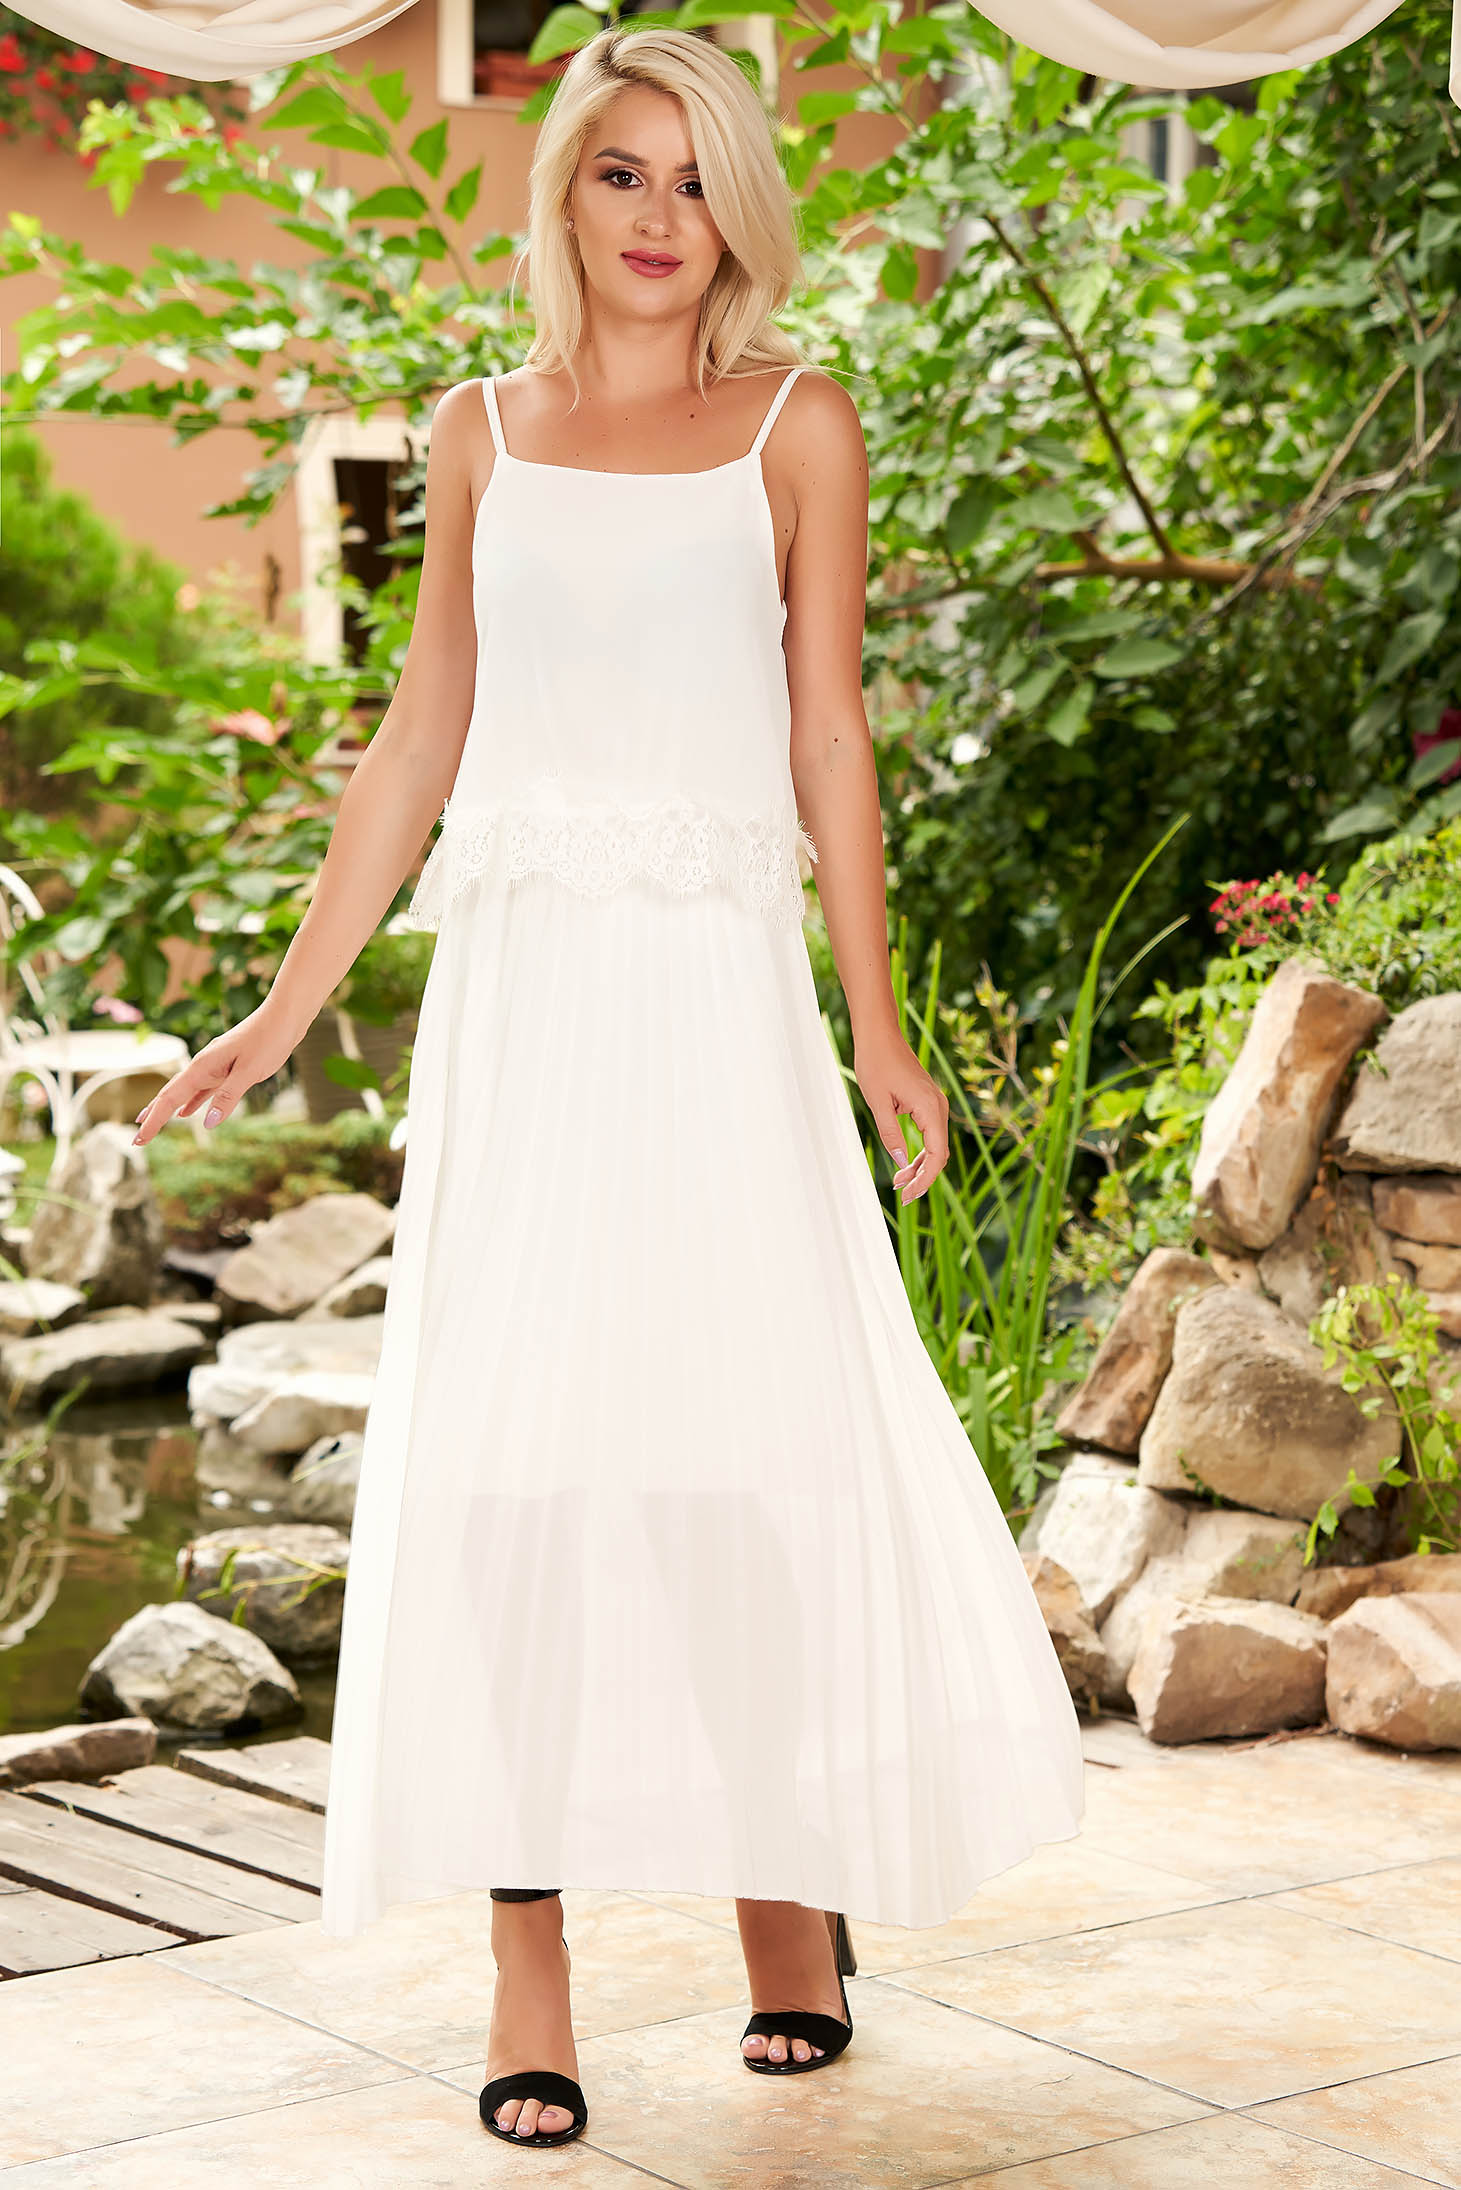 White dress daily midi flared from veil fabric folded up with straps